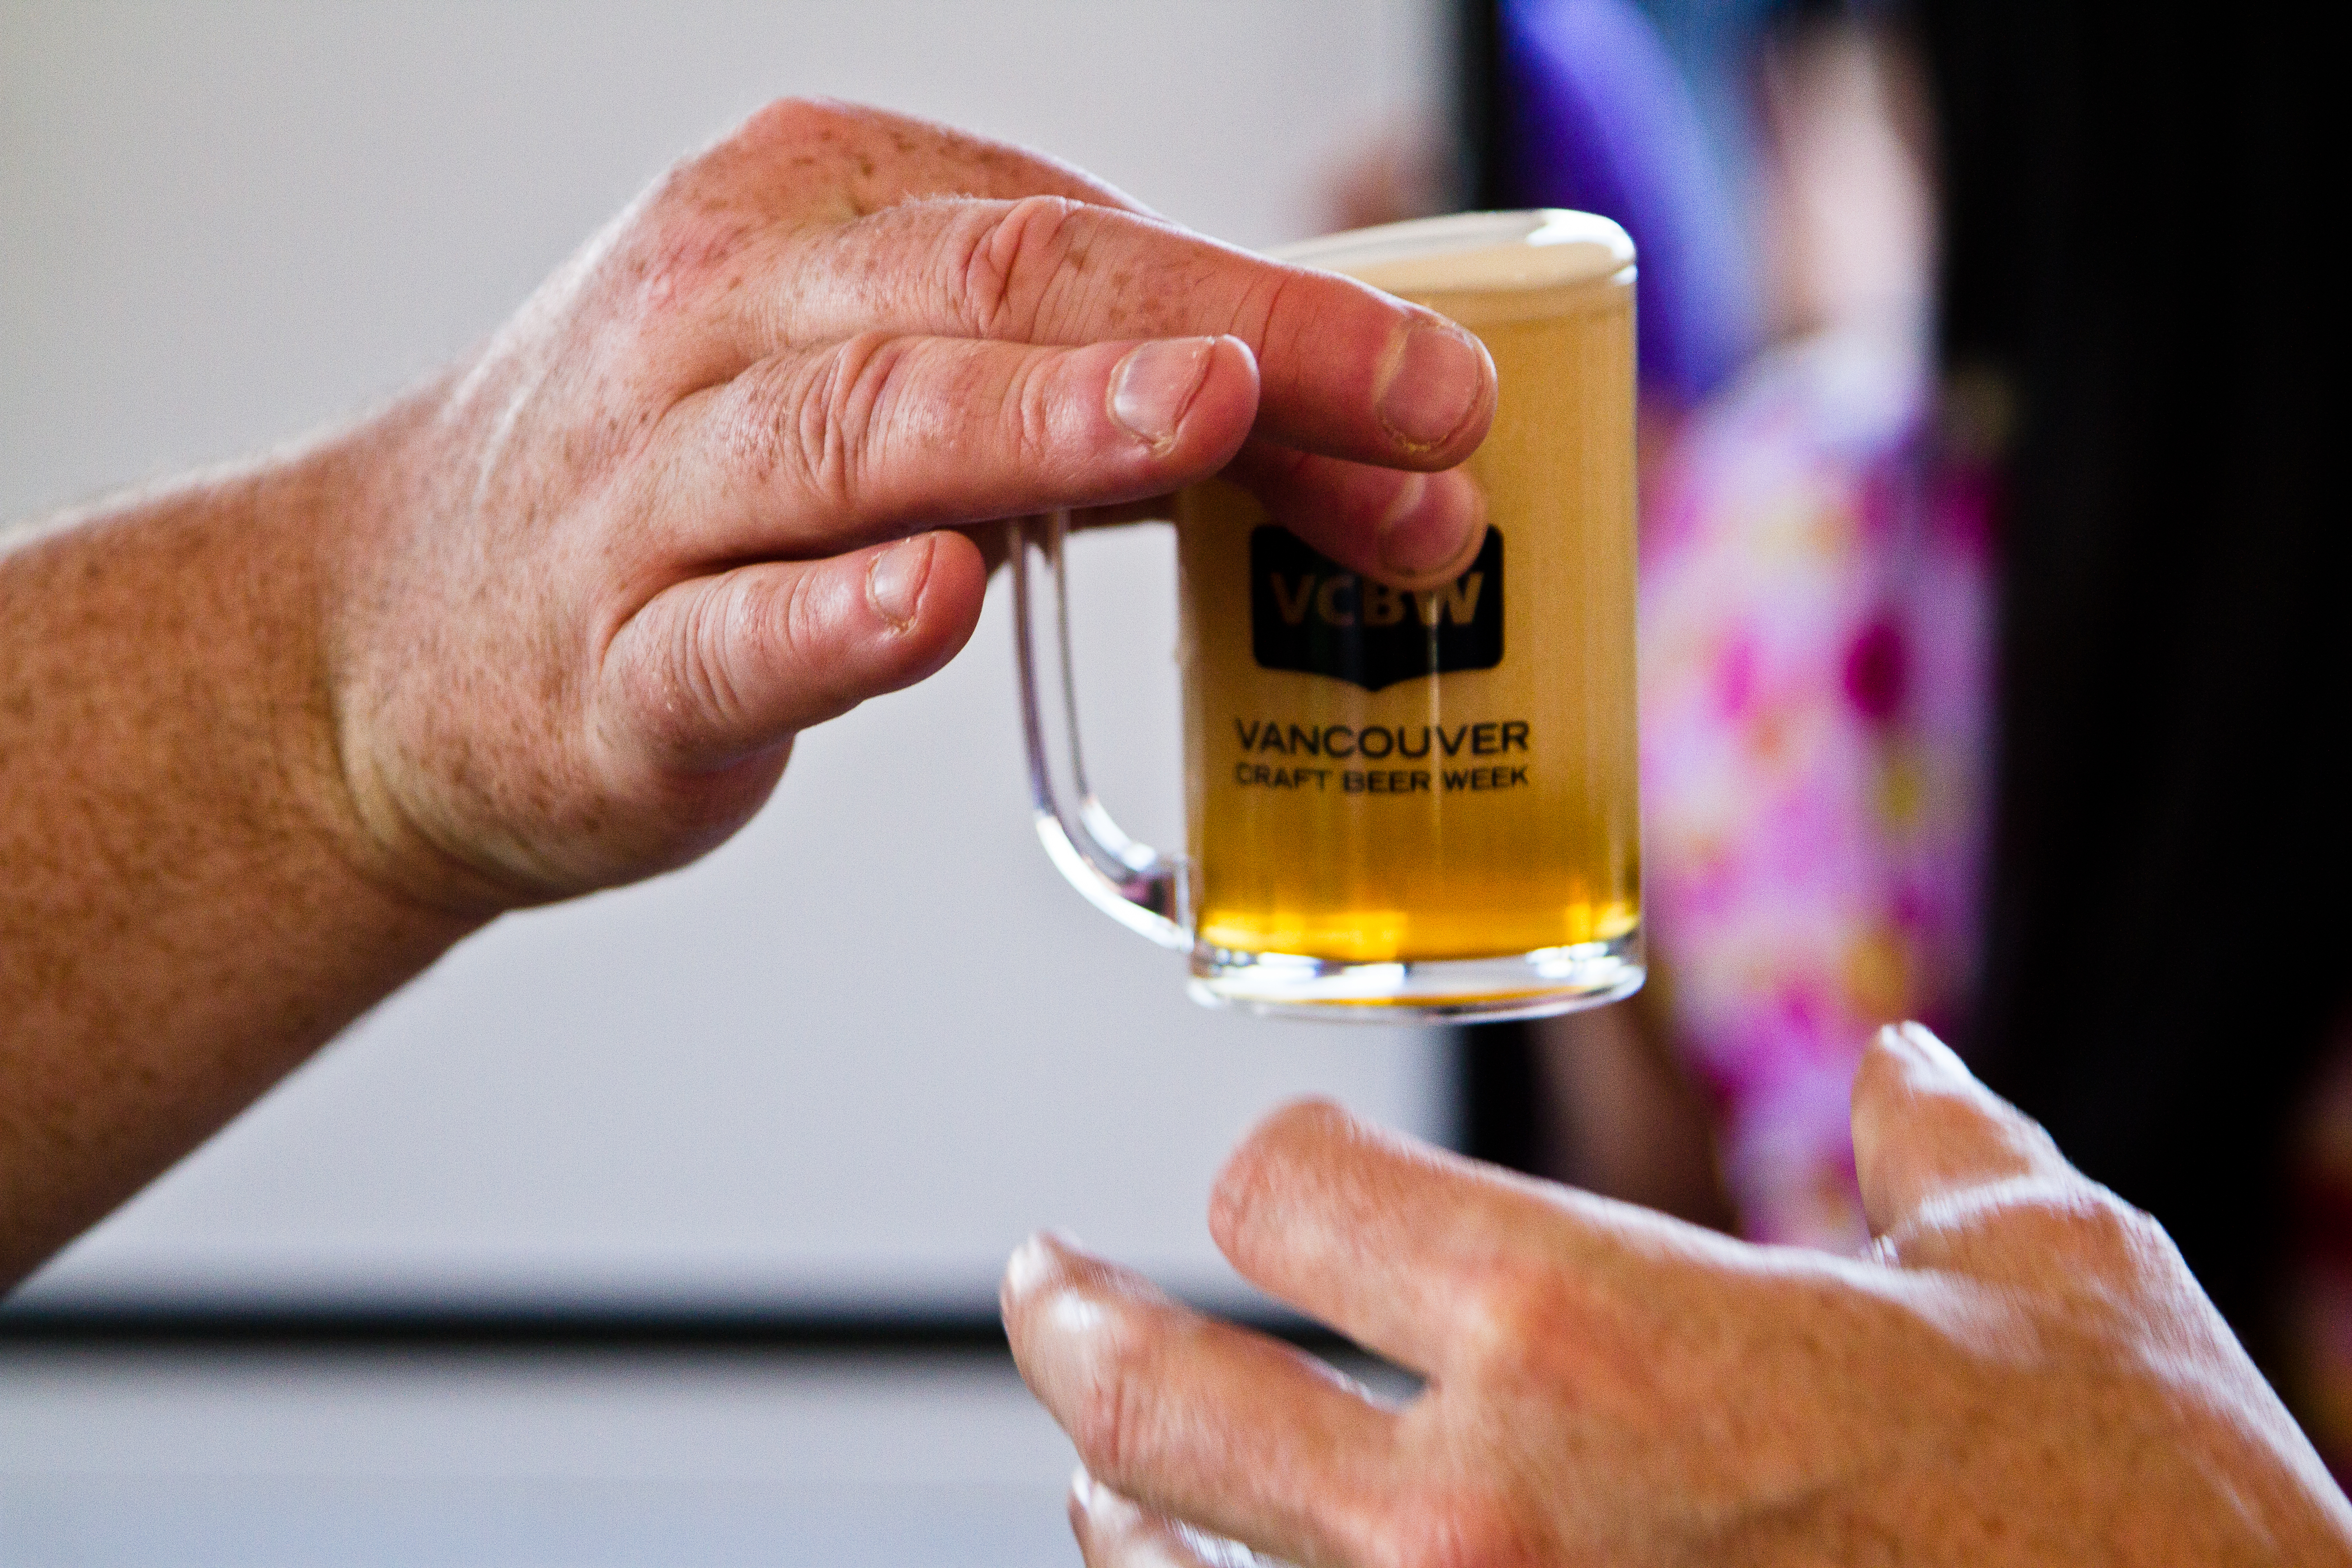 Vancouver Brewery Tours Inc- VCBW craft beer event